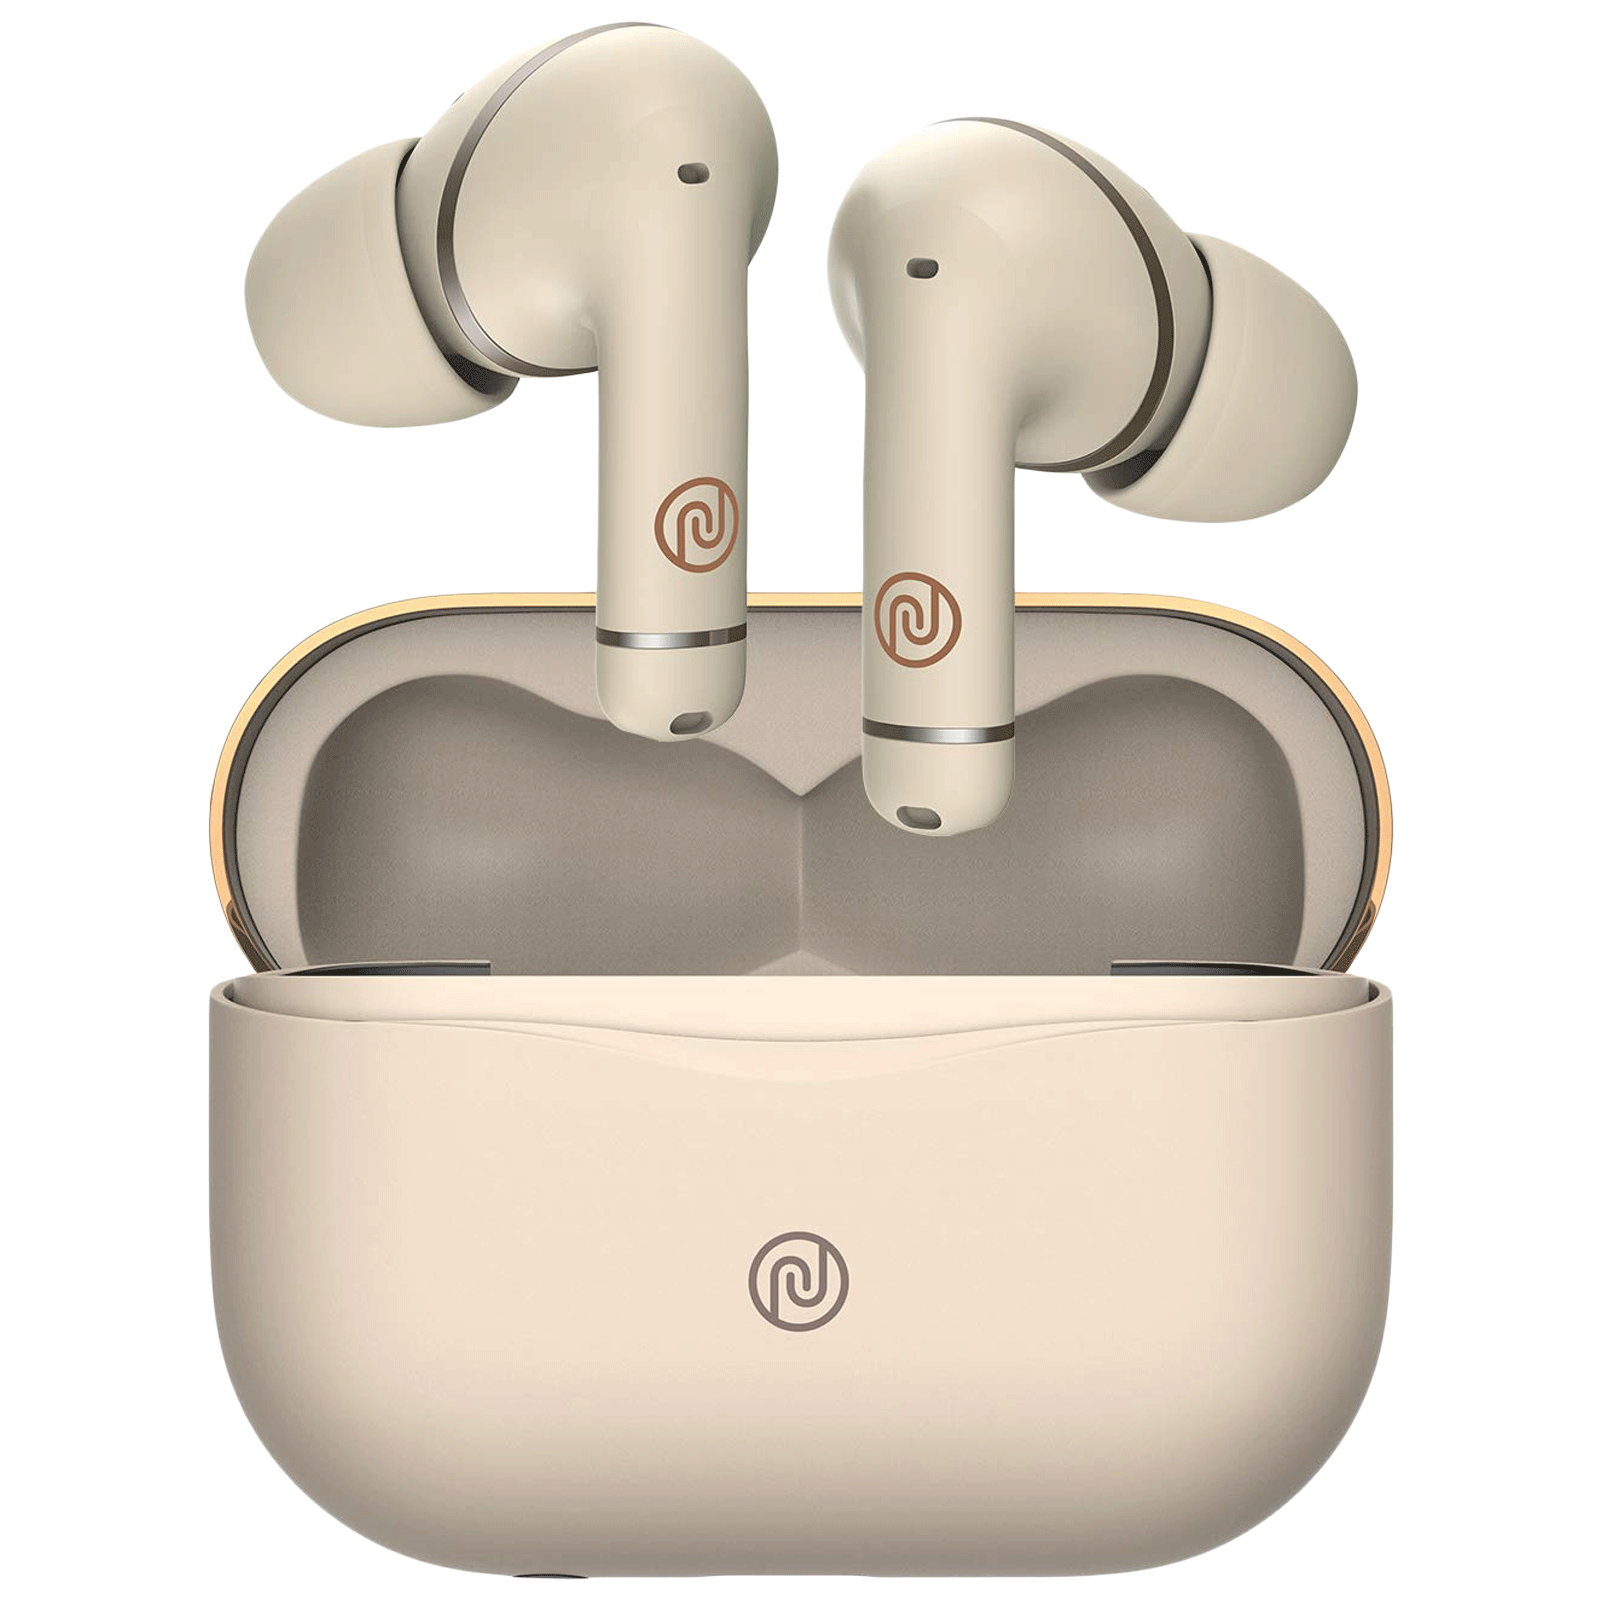 Noise Buds Solo In-Ear Hybrid Active Noise Cancellation Truly Wireless Earbuds With Mic (Bluetooth 5.0, 36-Hour Playtime, Ecru Gold)_1